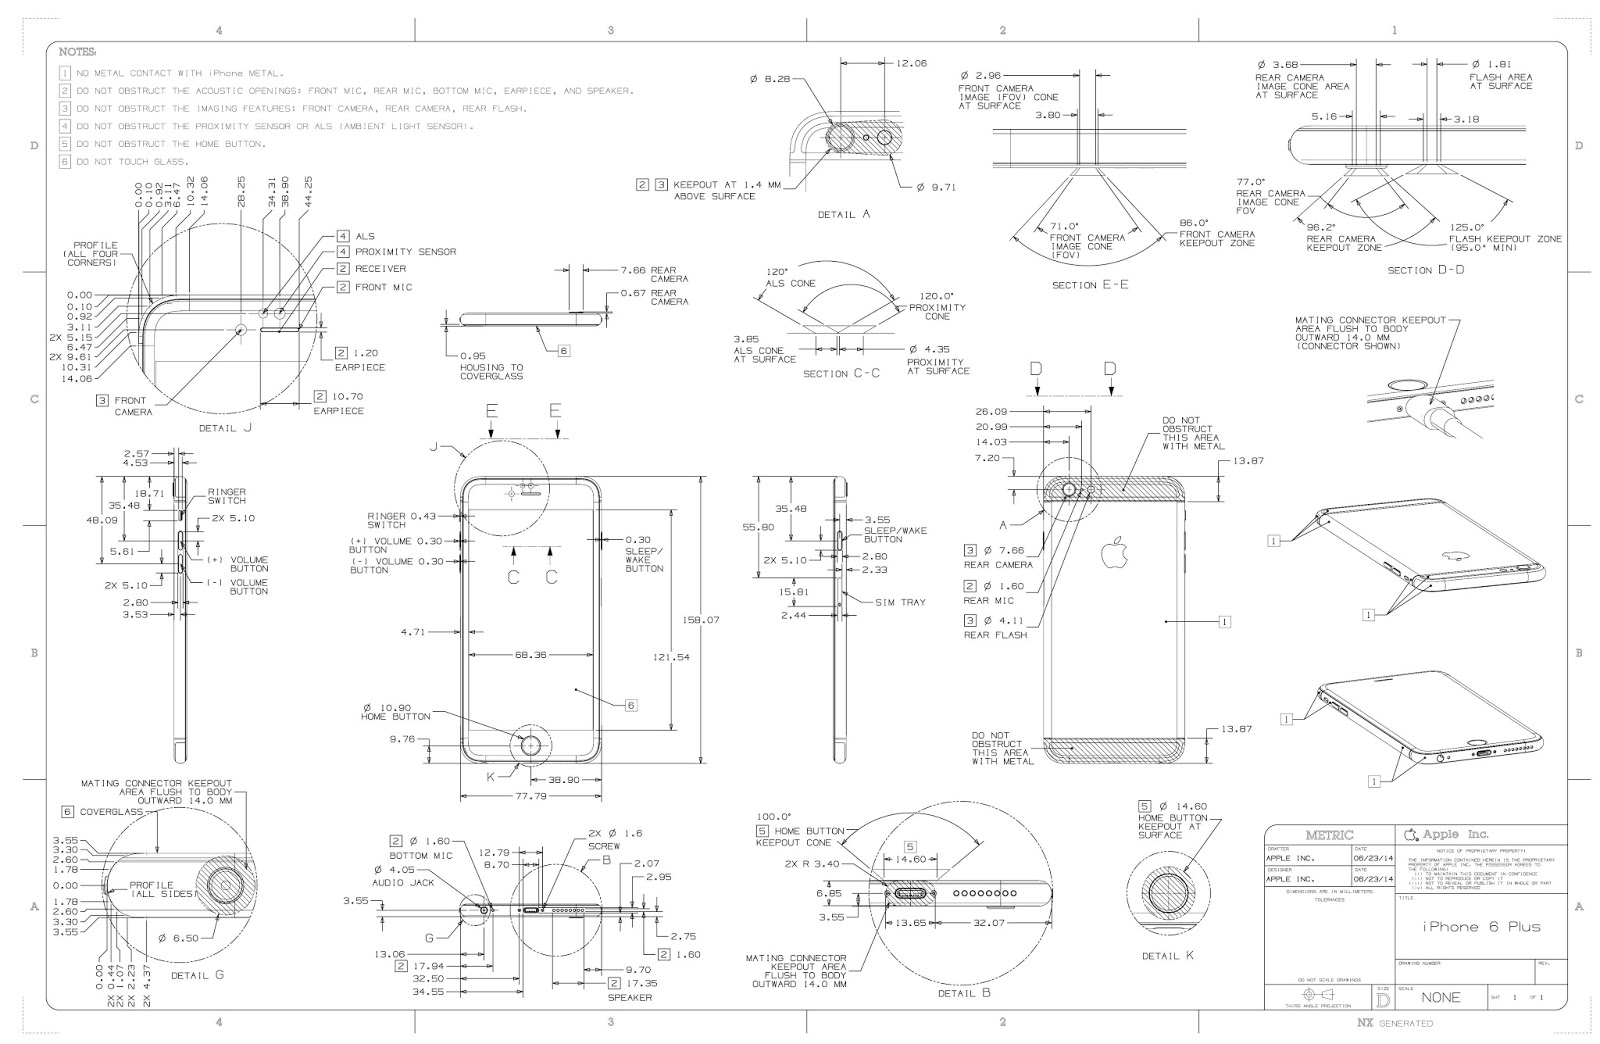 Bullettrain Bulletblog By Jakee Apple Iphone 6 Plus Usb Charger Wiring Diagram Dimensional Drawings Schematics